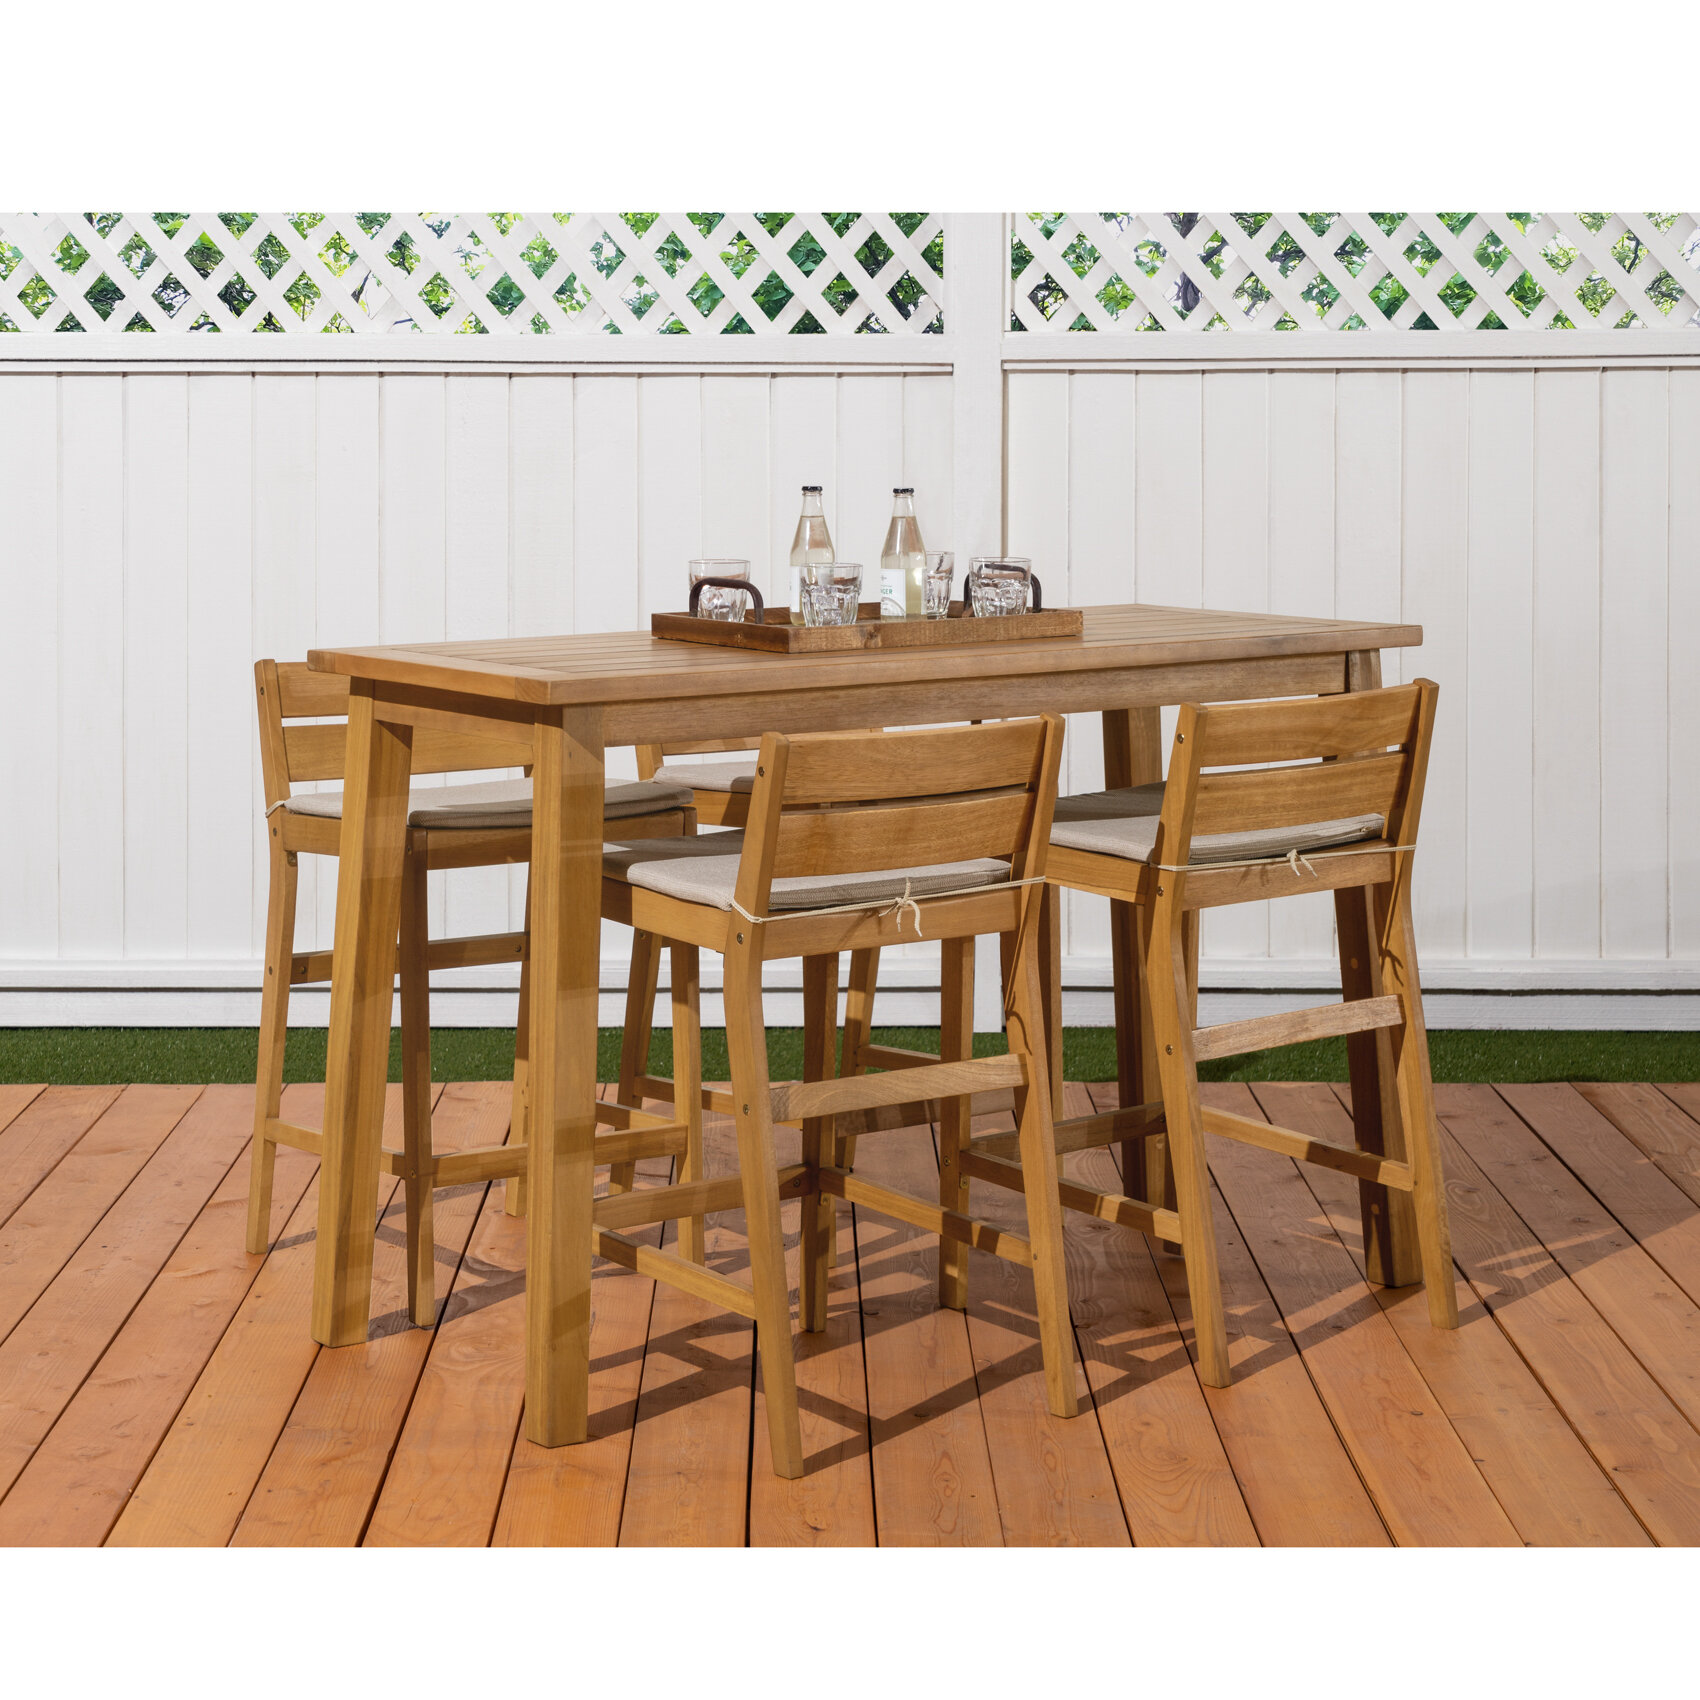 Breakwater bay glisson 5 piece teak bar height dining set with cushions reviews wayfair